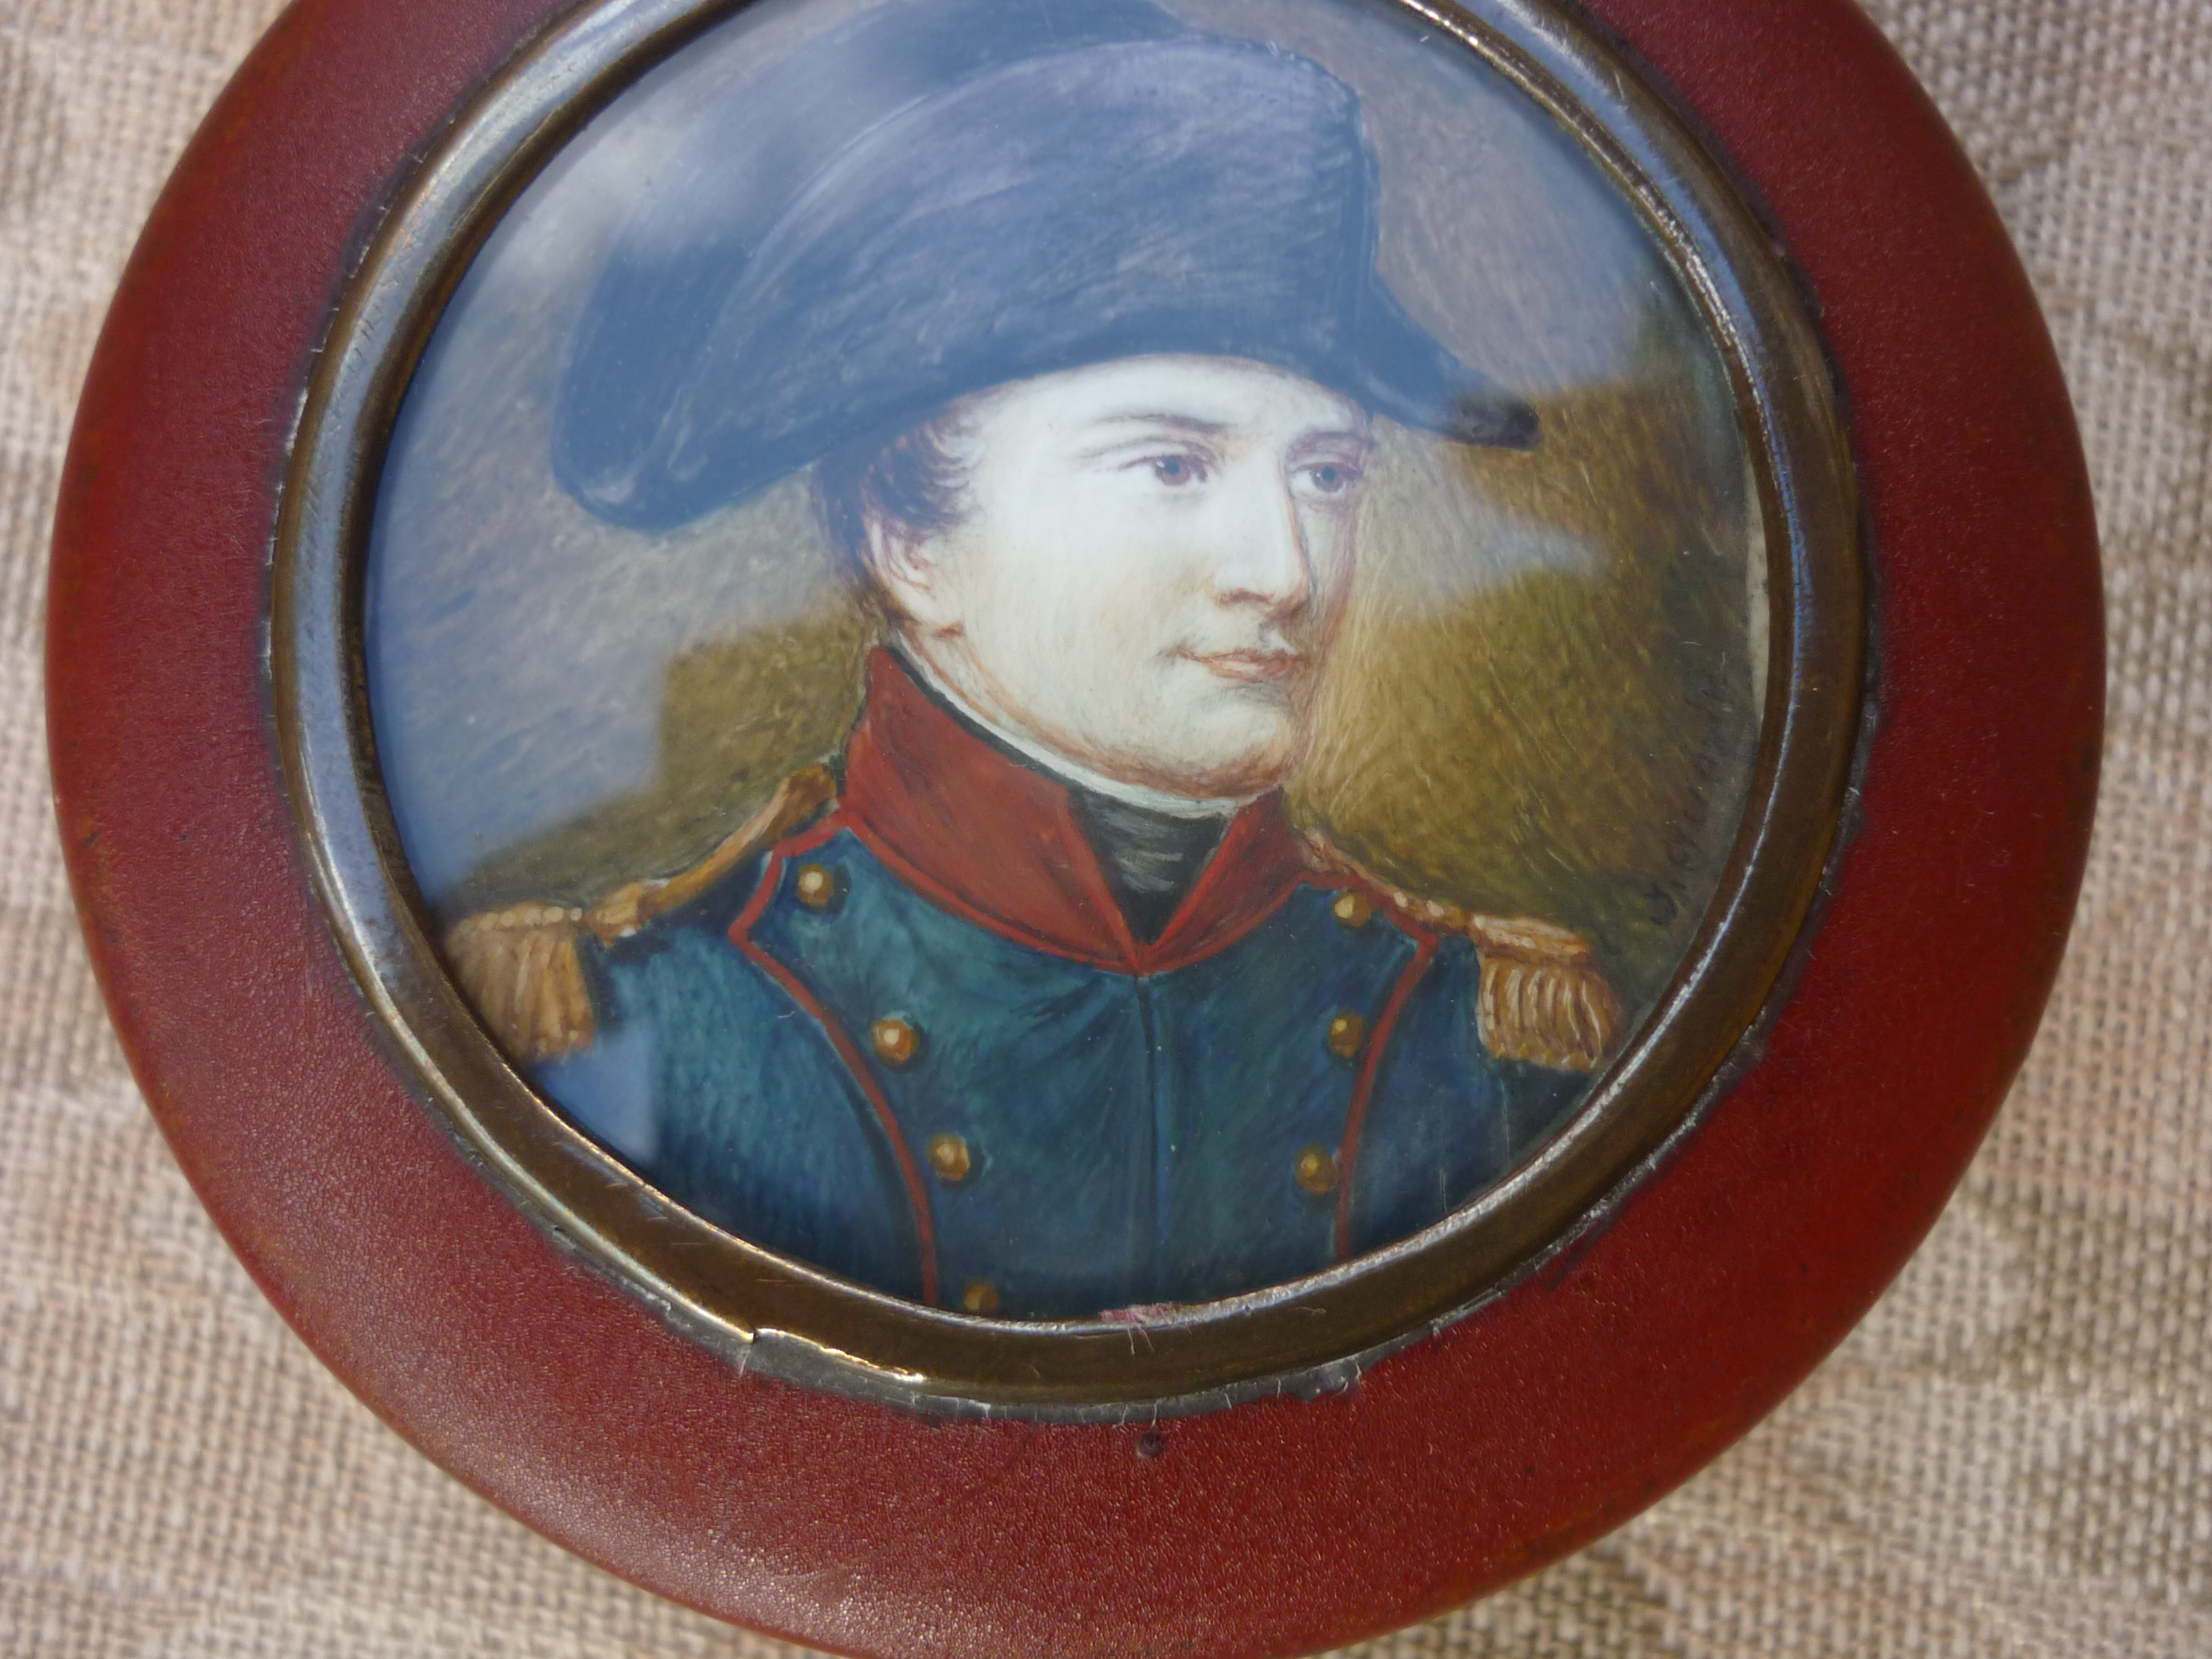 snuffbox portrait of Napoleon in officers uniform artwork by Jean Guerin - art listed for sale on Artplode